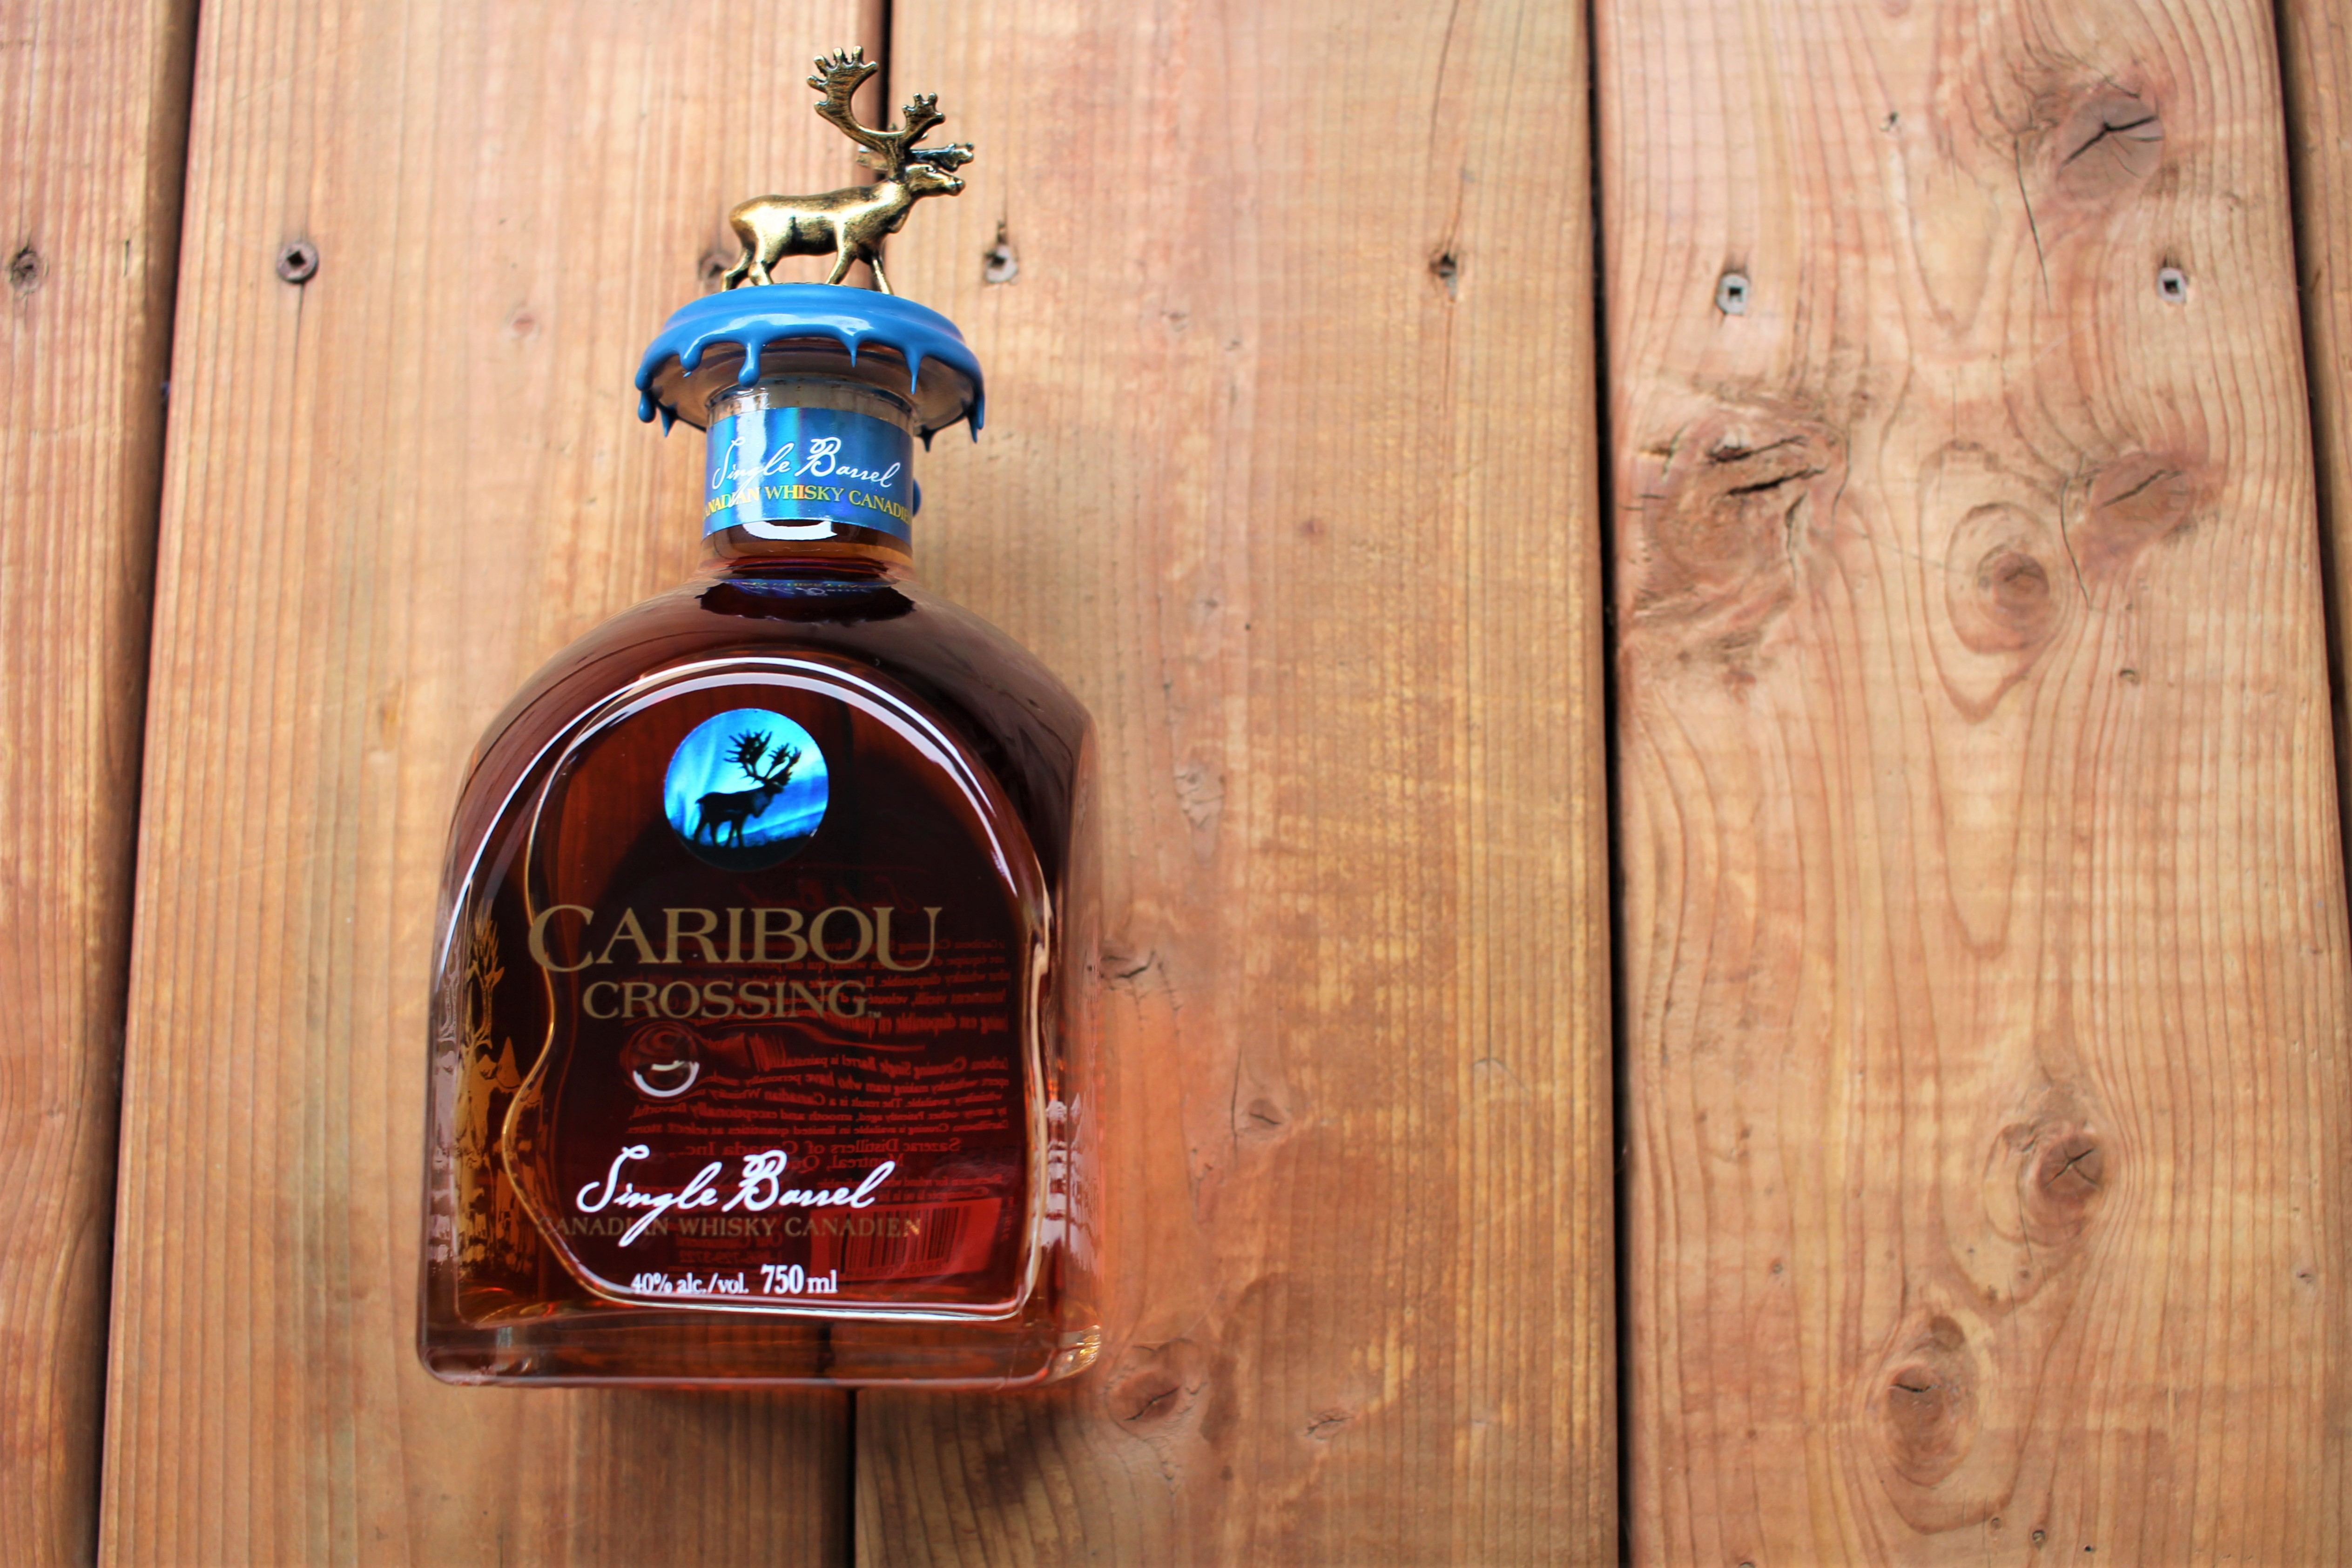 Caribou Crossing Single Barrel Canadian Whisky with Dan